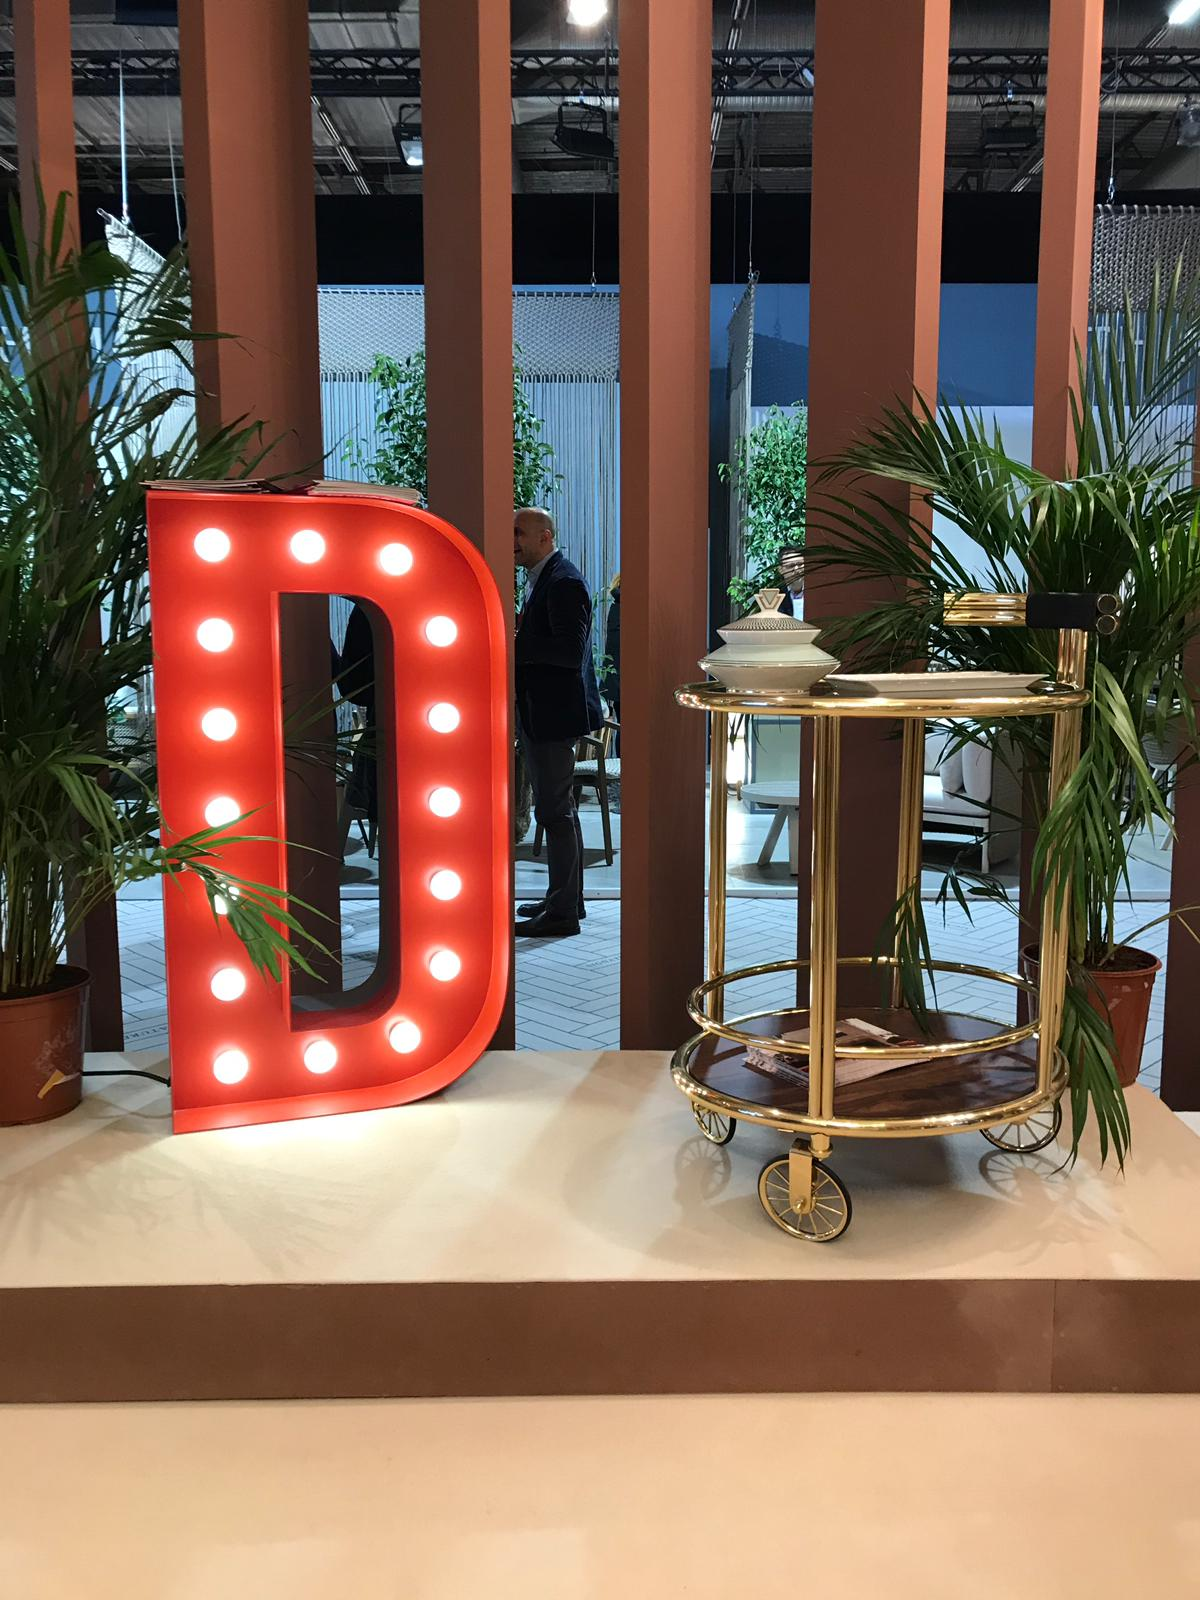 Almost Coming To Na End, See What You Missed At Maison Et Objet 2019 2 Maison Et Objet 2019 Almost Coming To An End, See What You Missed At Maison Et Objet 2019 Almost Coming To Na End See What You Missed At Maison Et Objet 2019 2